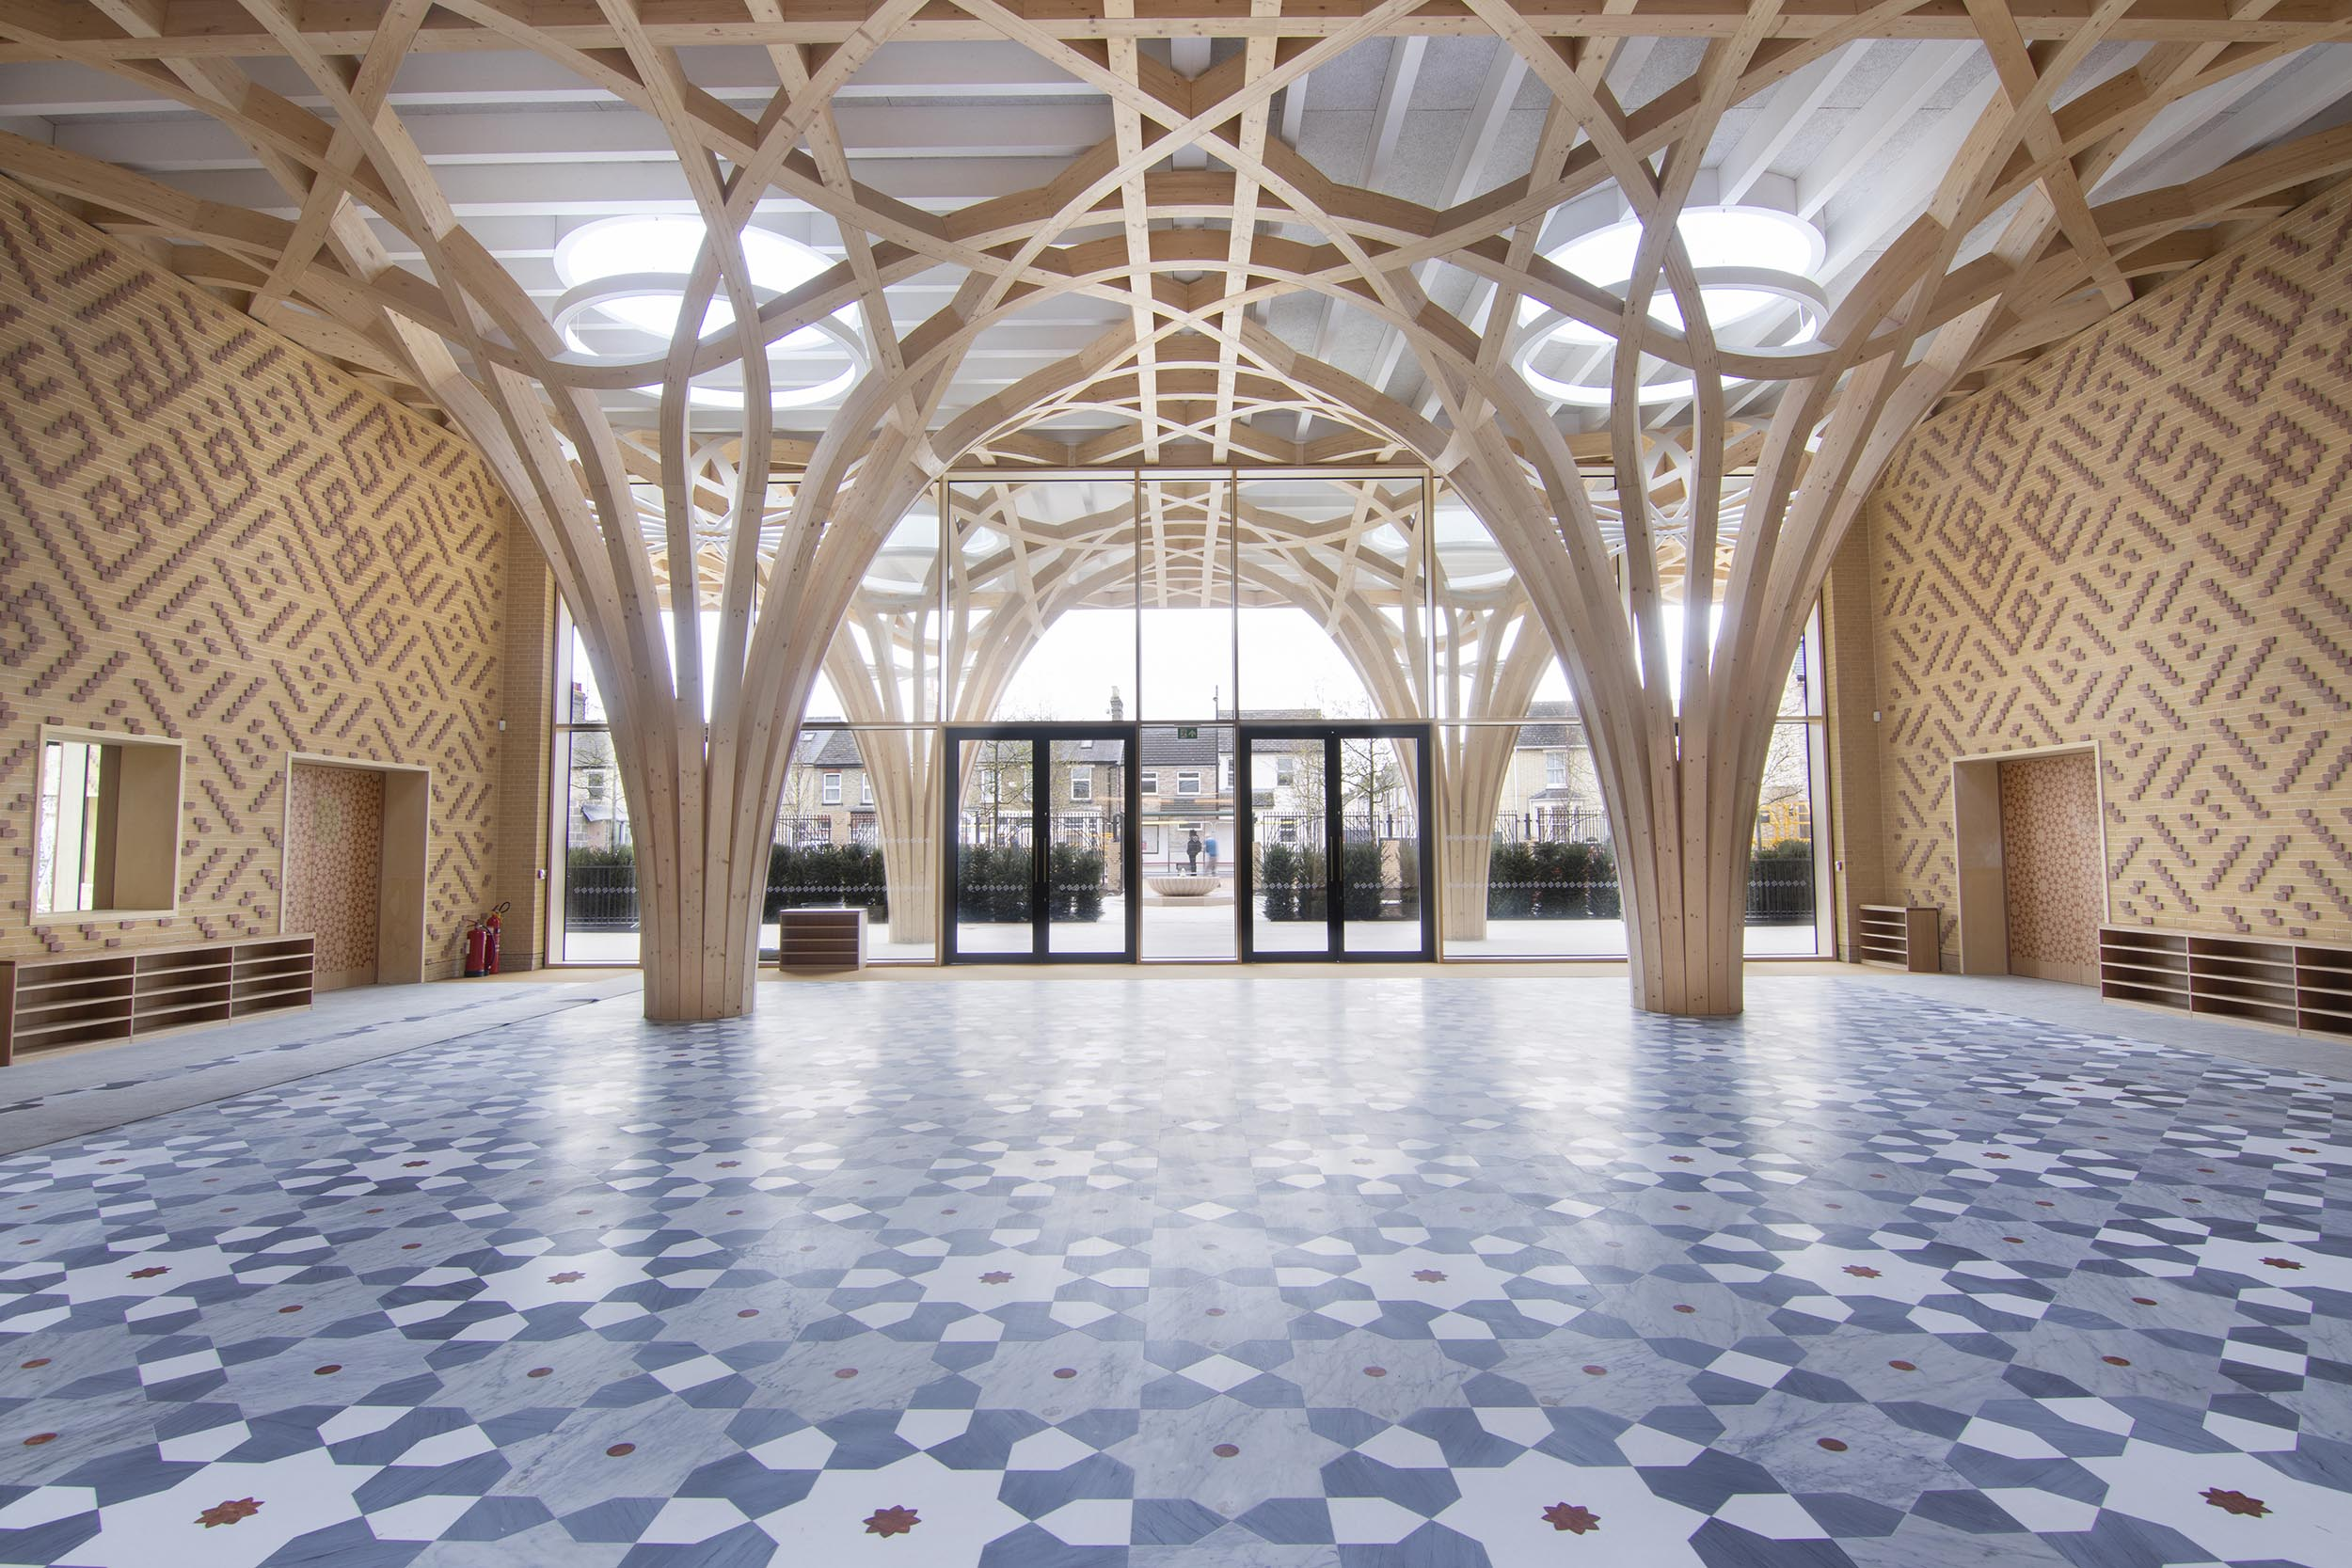 Cambridge Mosque - Atrium - by Marks Barfield Architects, photo by Abdallah Abada